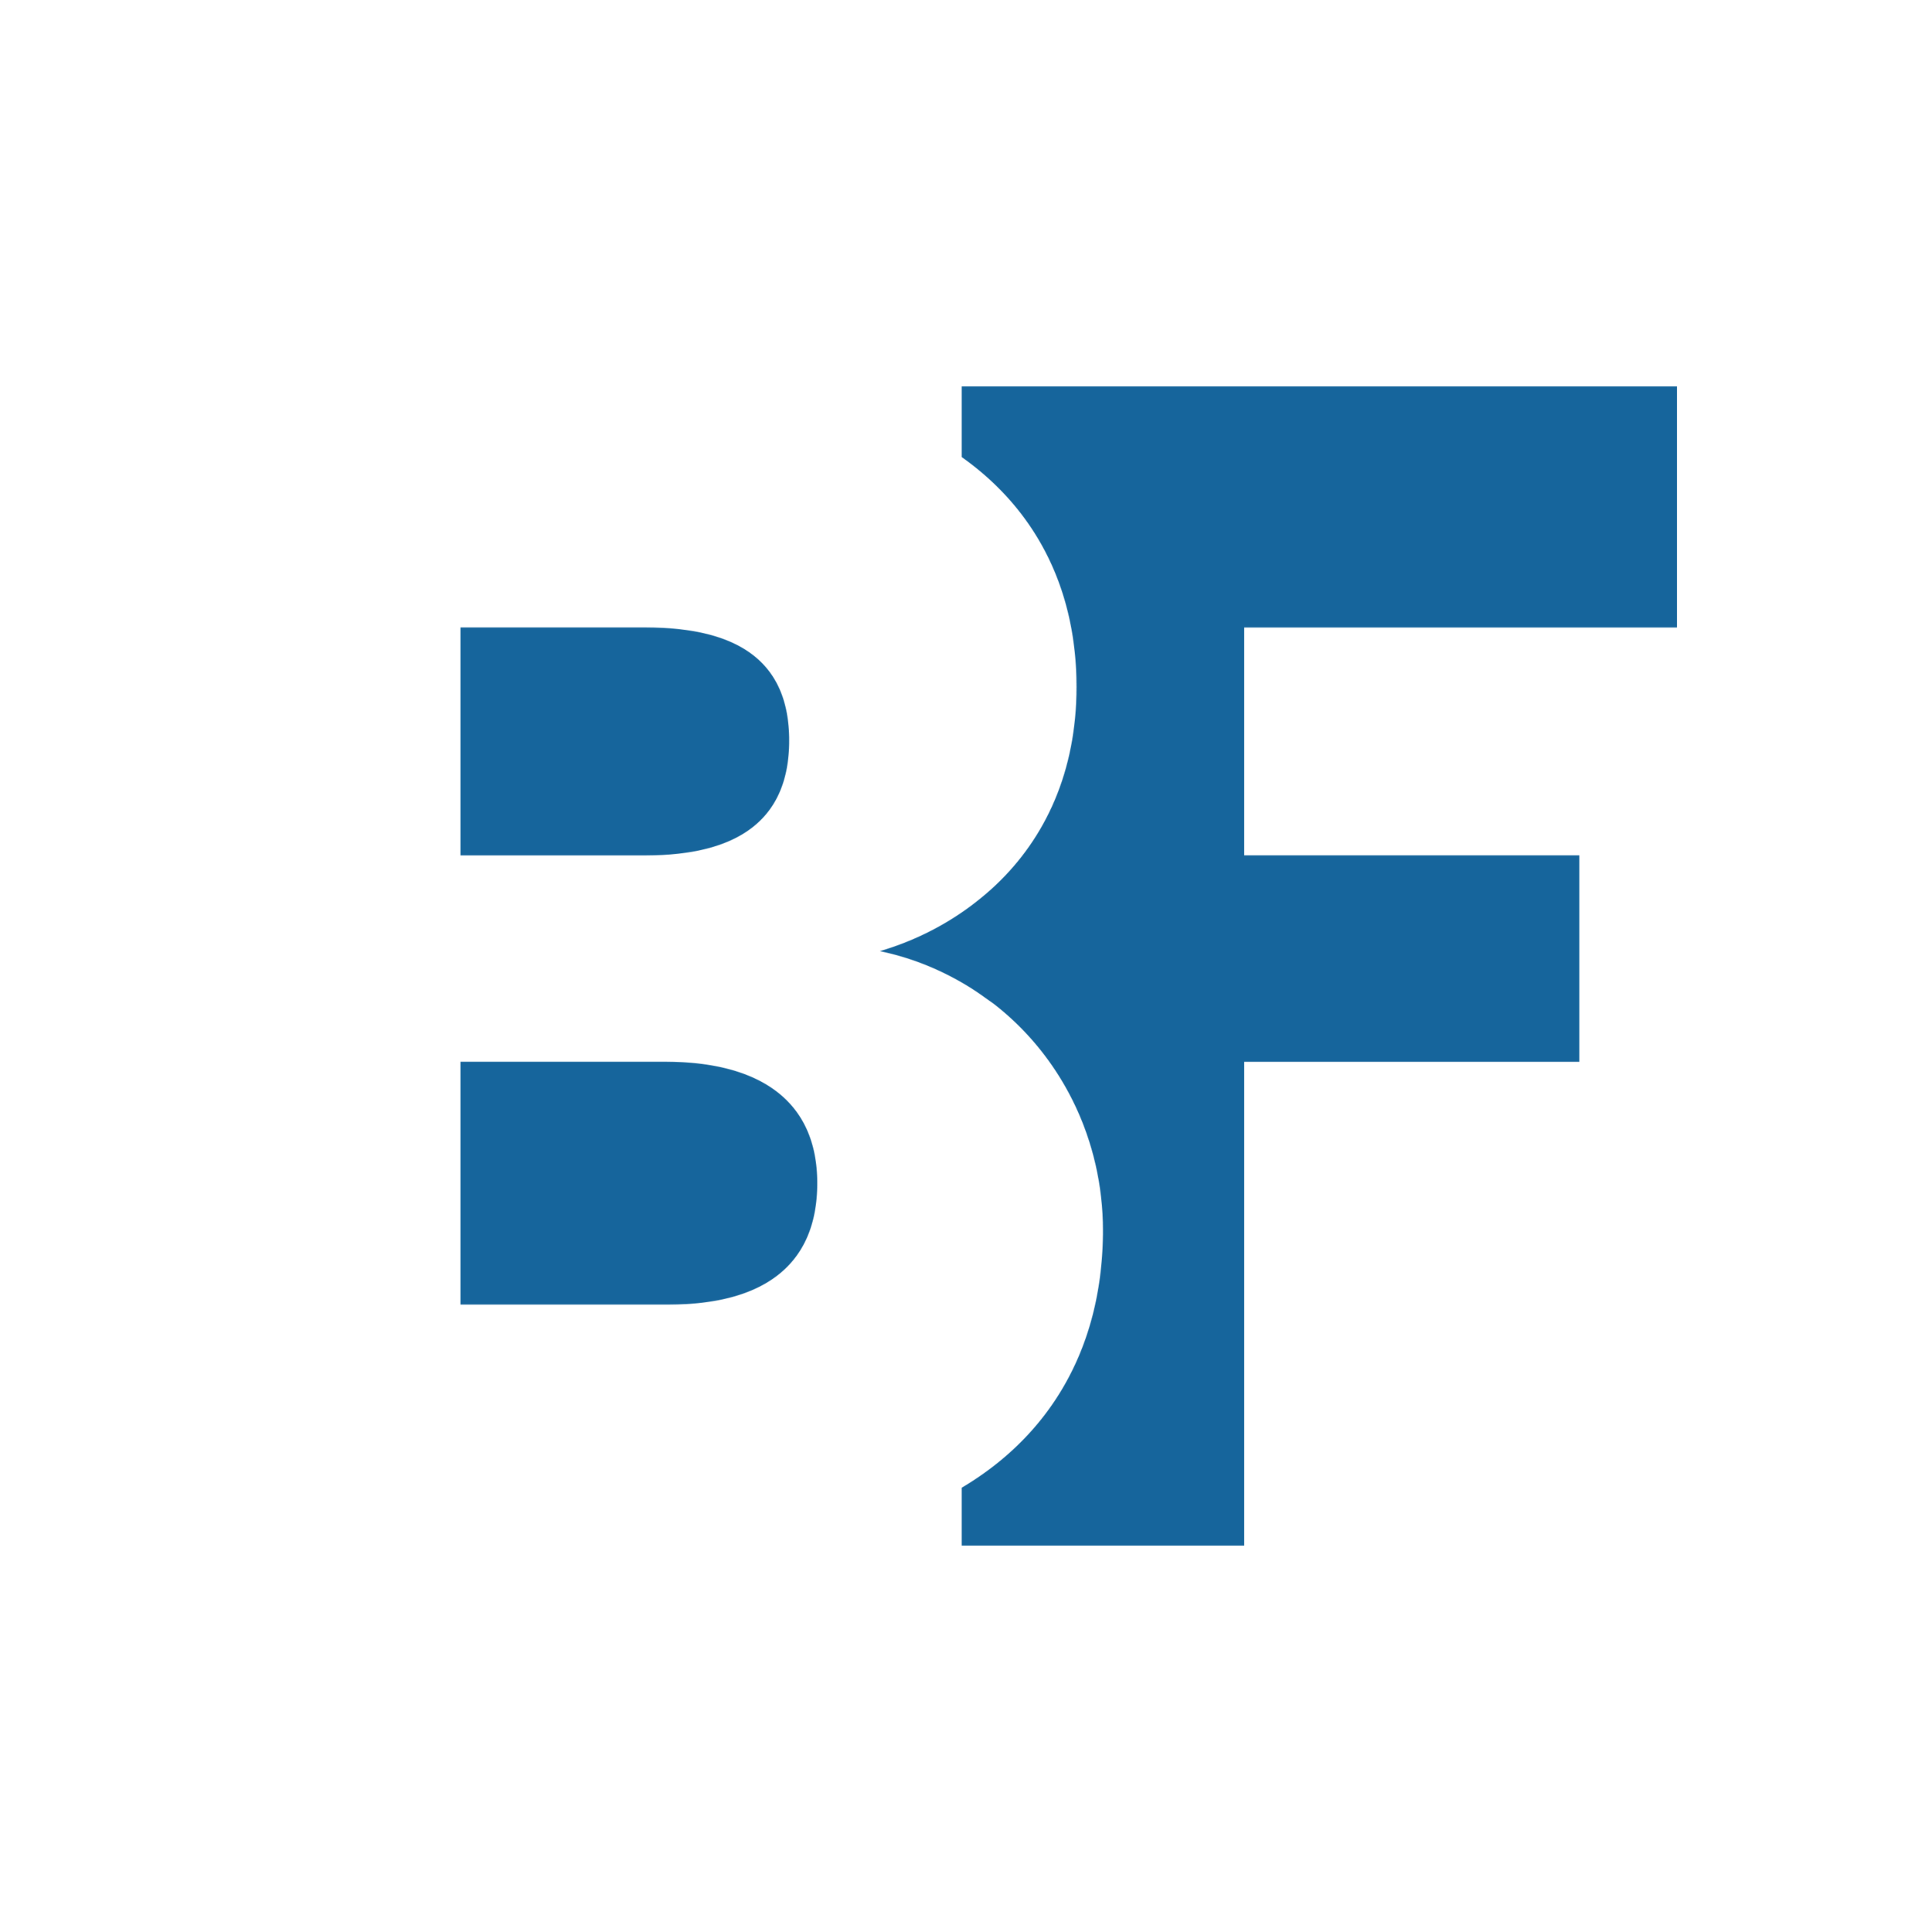 BF_Monogram_Color.png